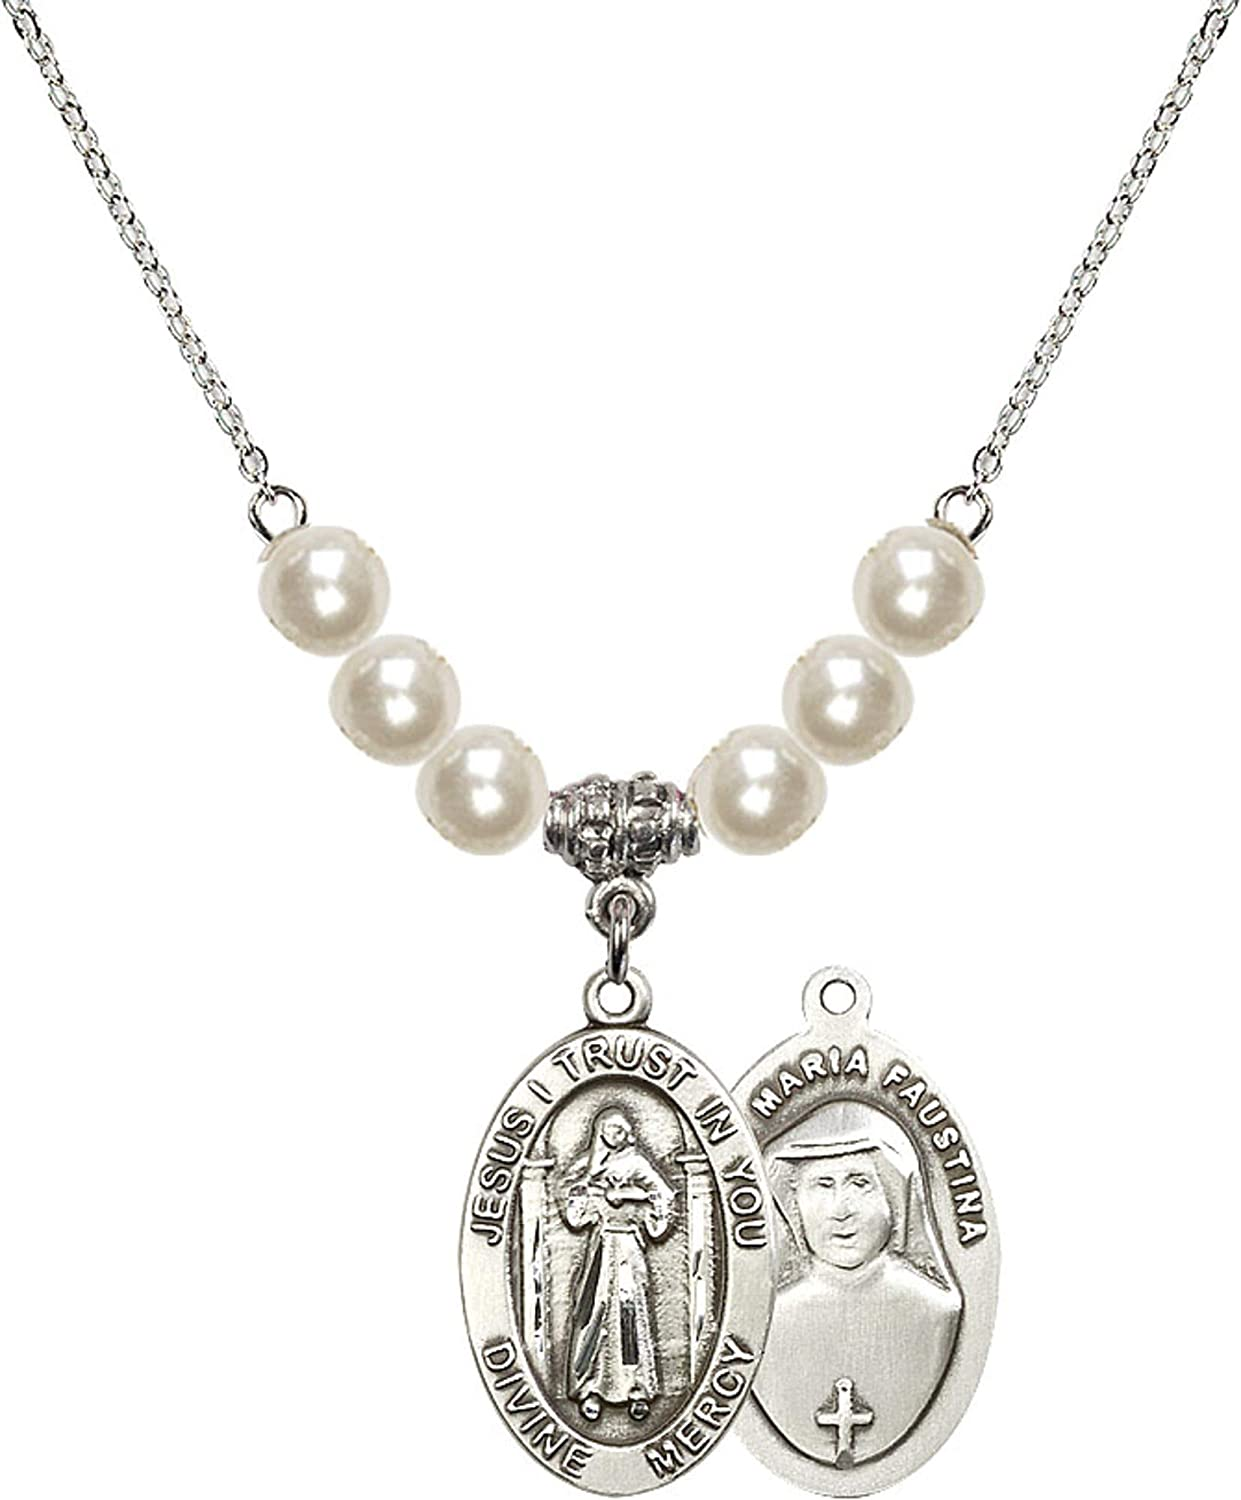 Bonyak Jewelry 18 Inch Rhodium Plated Necklace w// 6mm Faux-Pearl Beads and Divine Mercy Charm